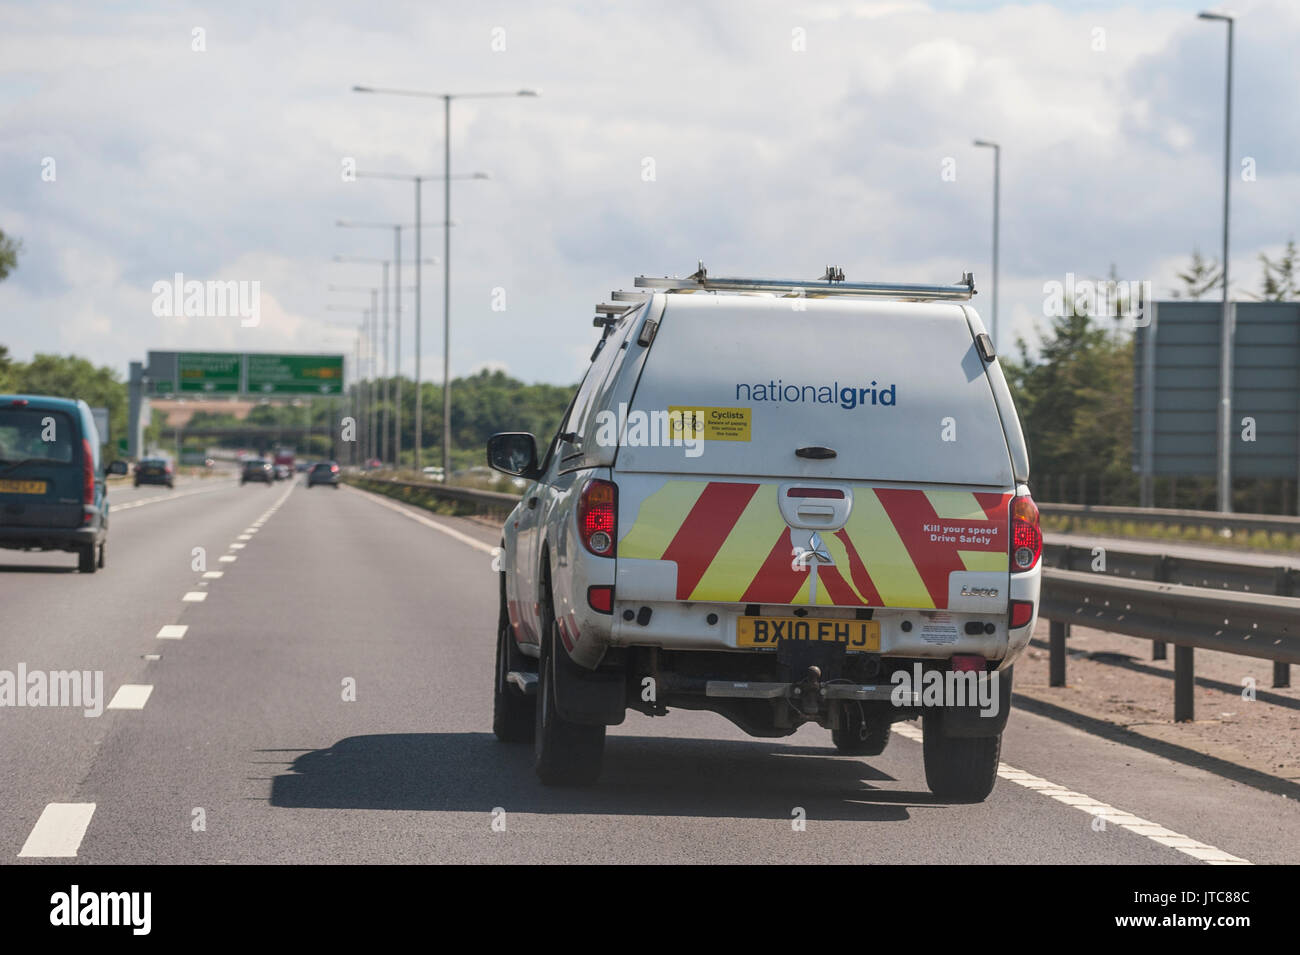 National grid uk stock photos national grid uk stock images alamy a nationalgrid van driving on a main road in the uk stock image biocorpaavc Image collections